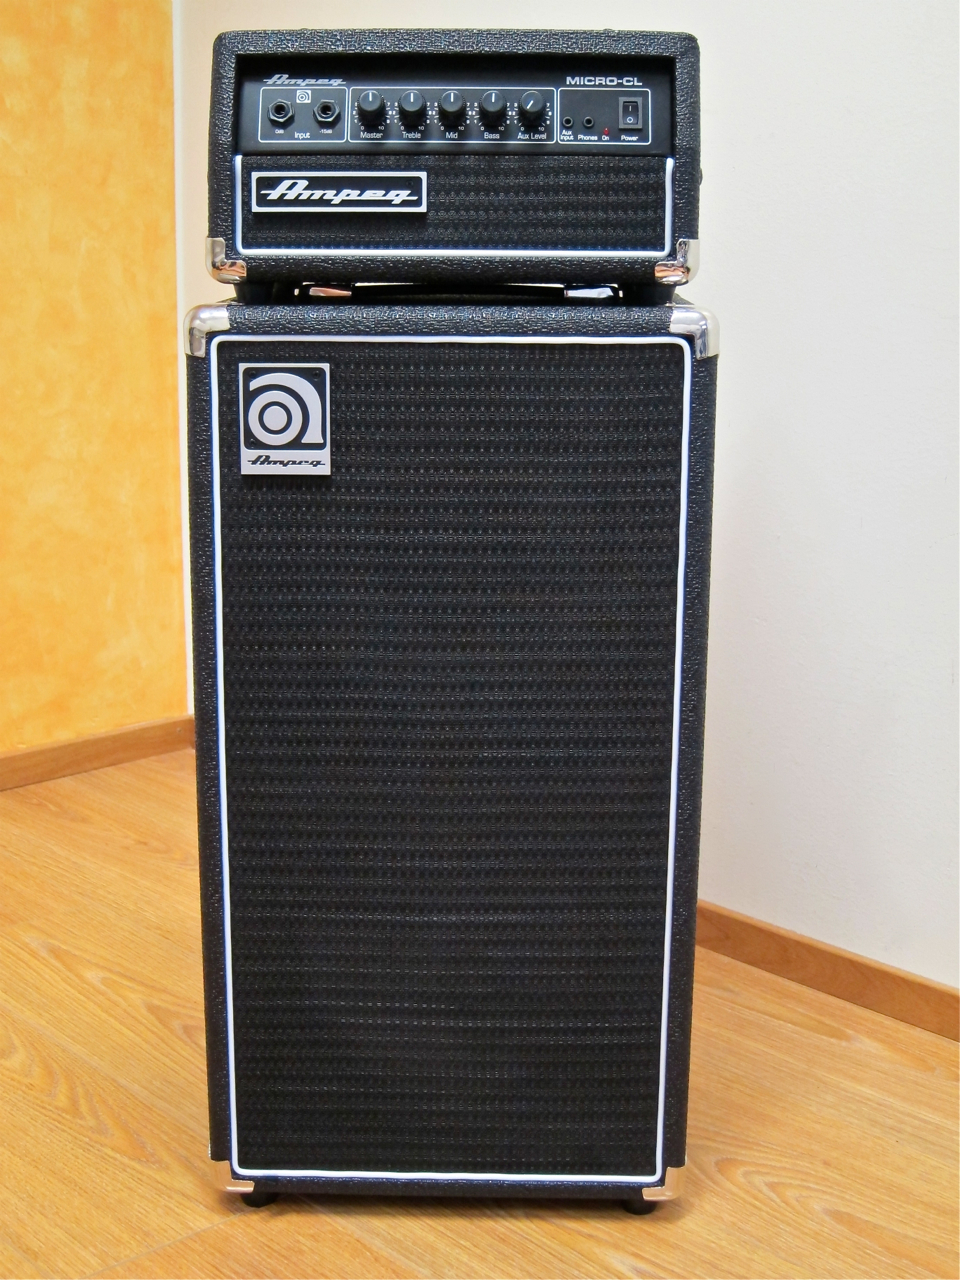 review ampeg micro cl stack gear review finland. Black Bedroom Furniture Sets. Home Design Ideas